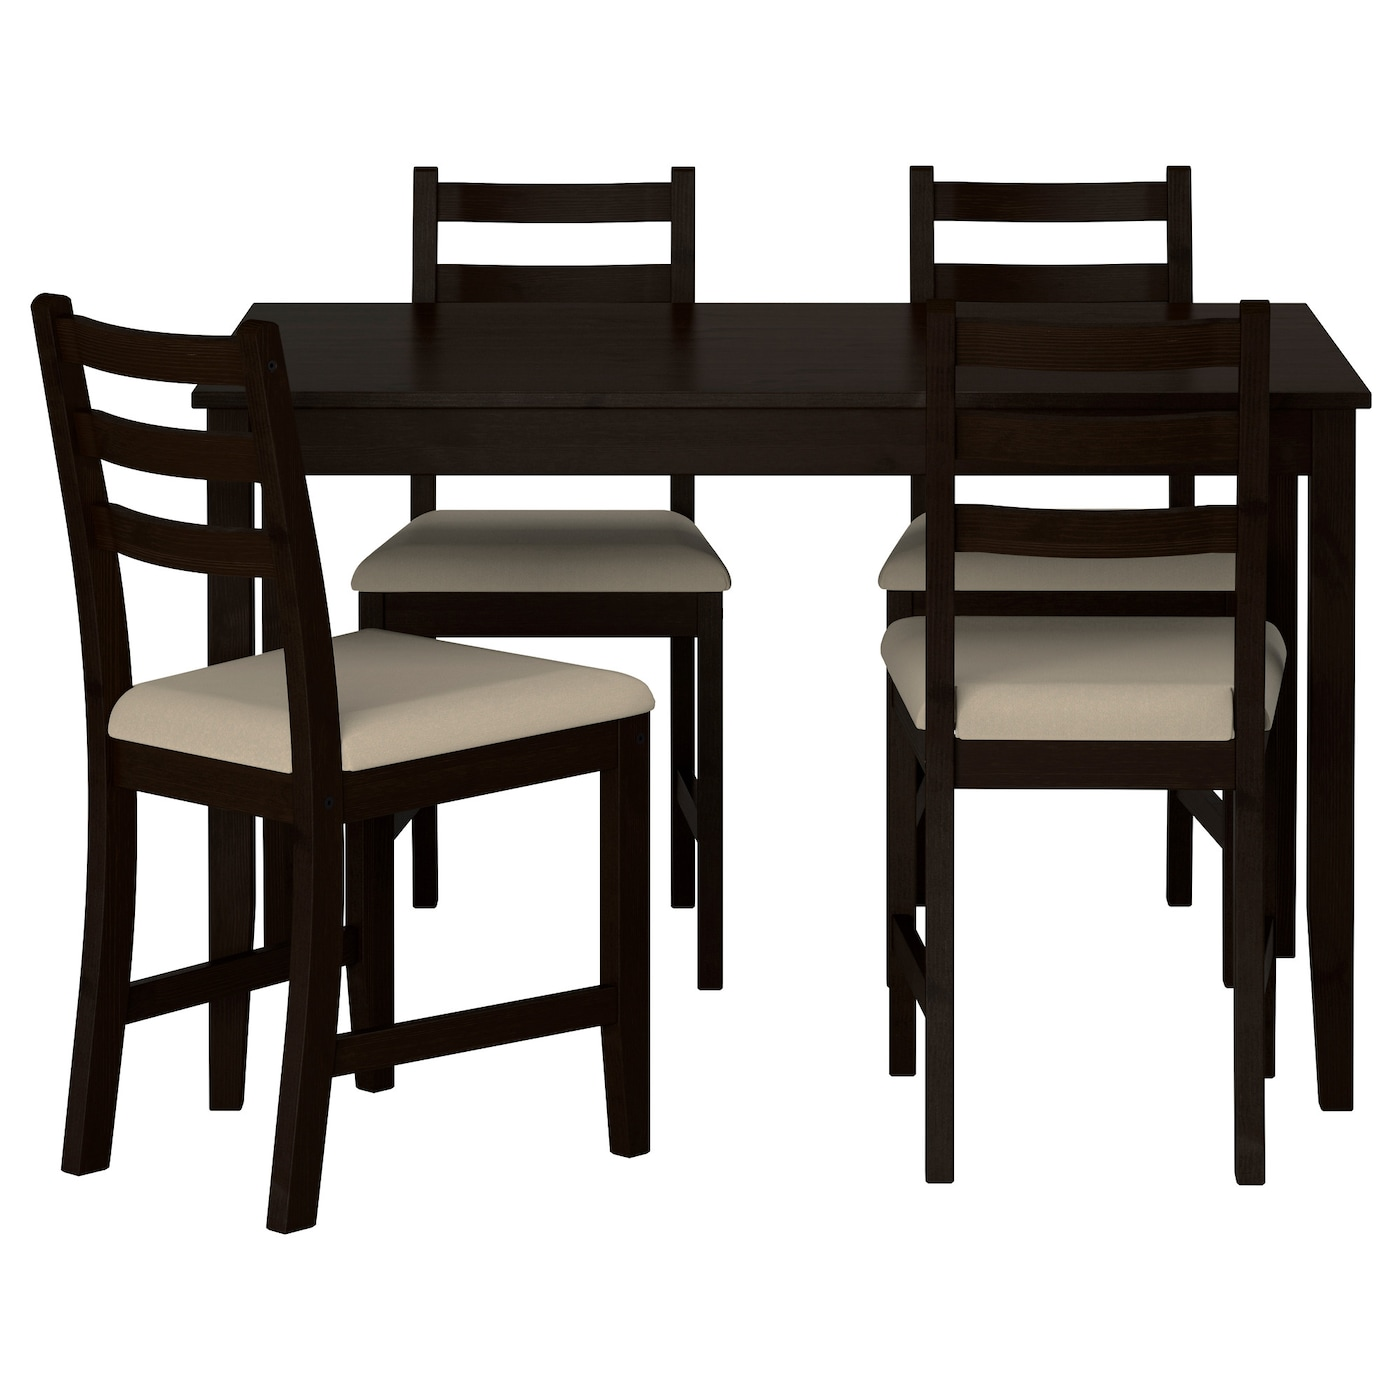 LERHAMN Table and 4 chairs Black brown ramna beige 118x74 cm IKEA